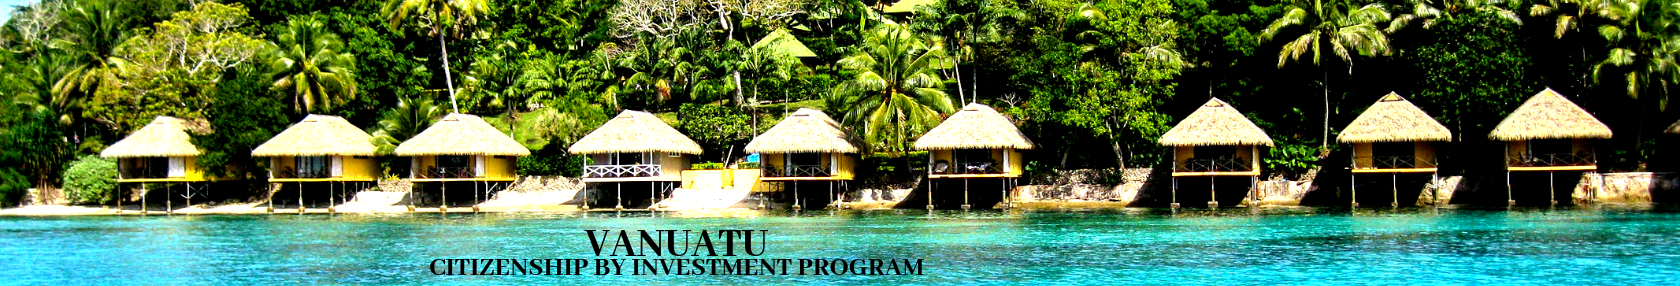 Vanuatu, Citizenship by Investment